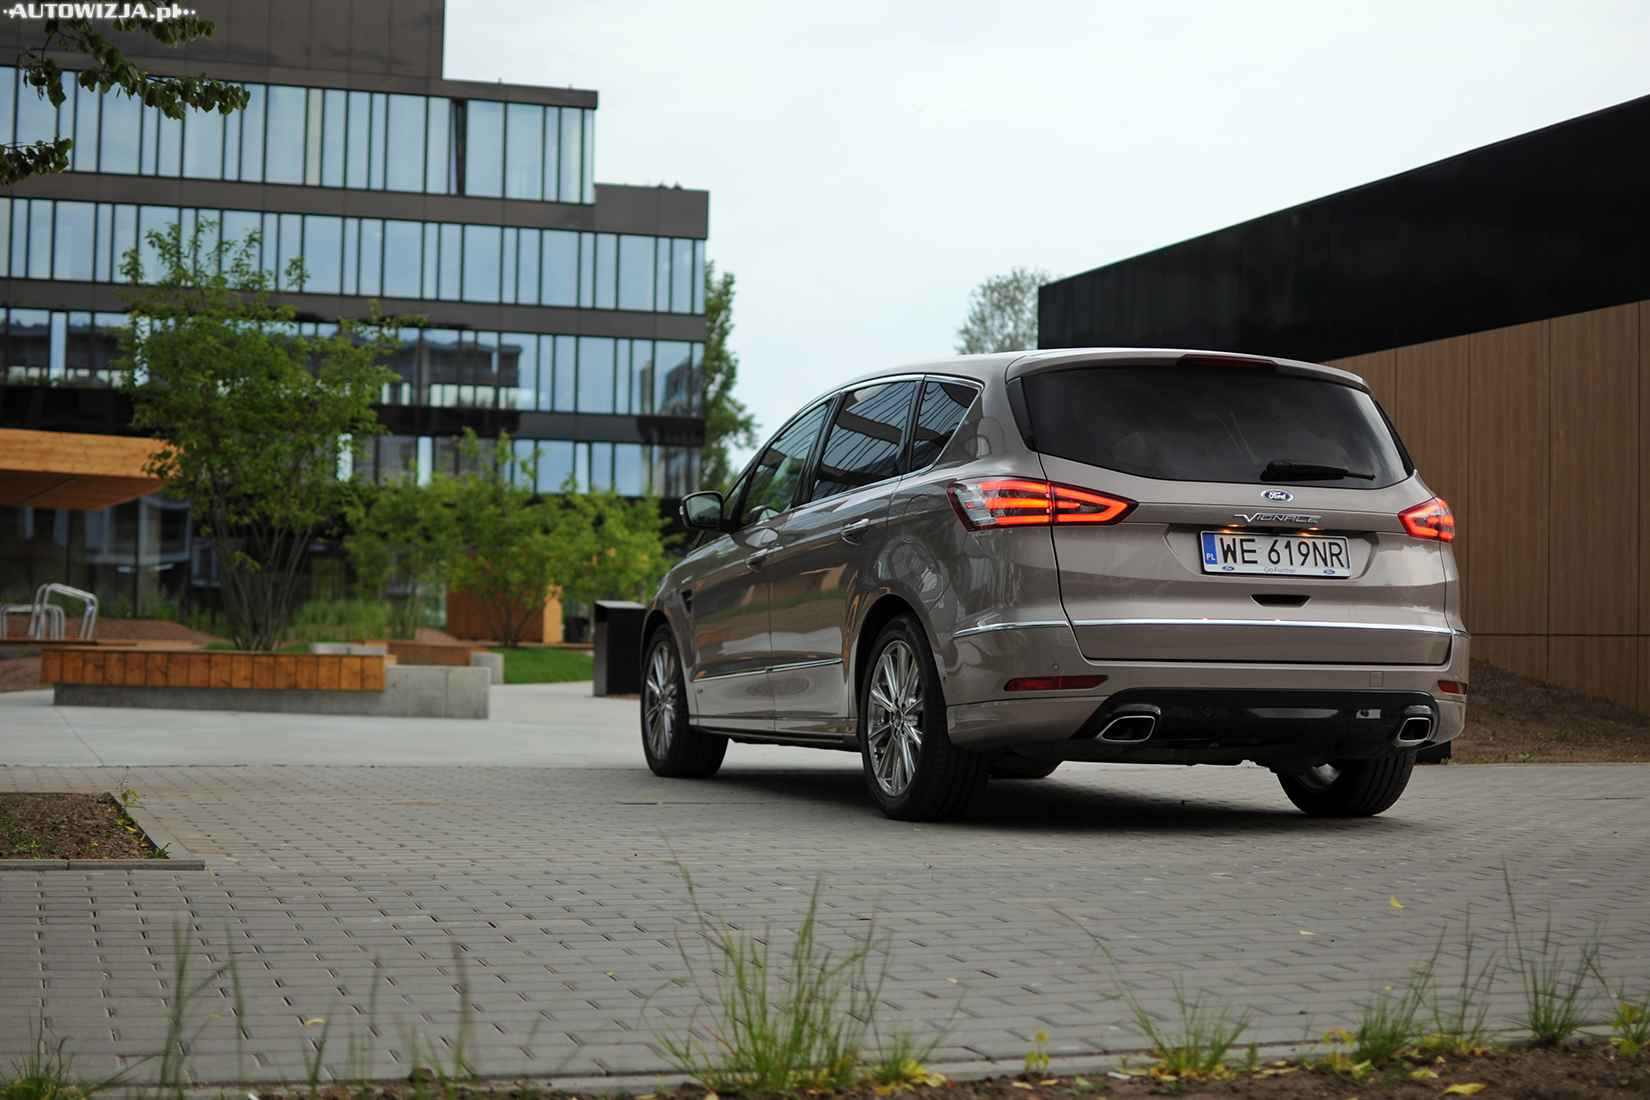 ford s max vignale 2 0 tdci 180 km awd test motoryzacja. Black Bedroom Furniture Sets. Home Design Ideas